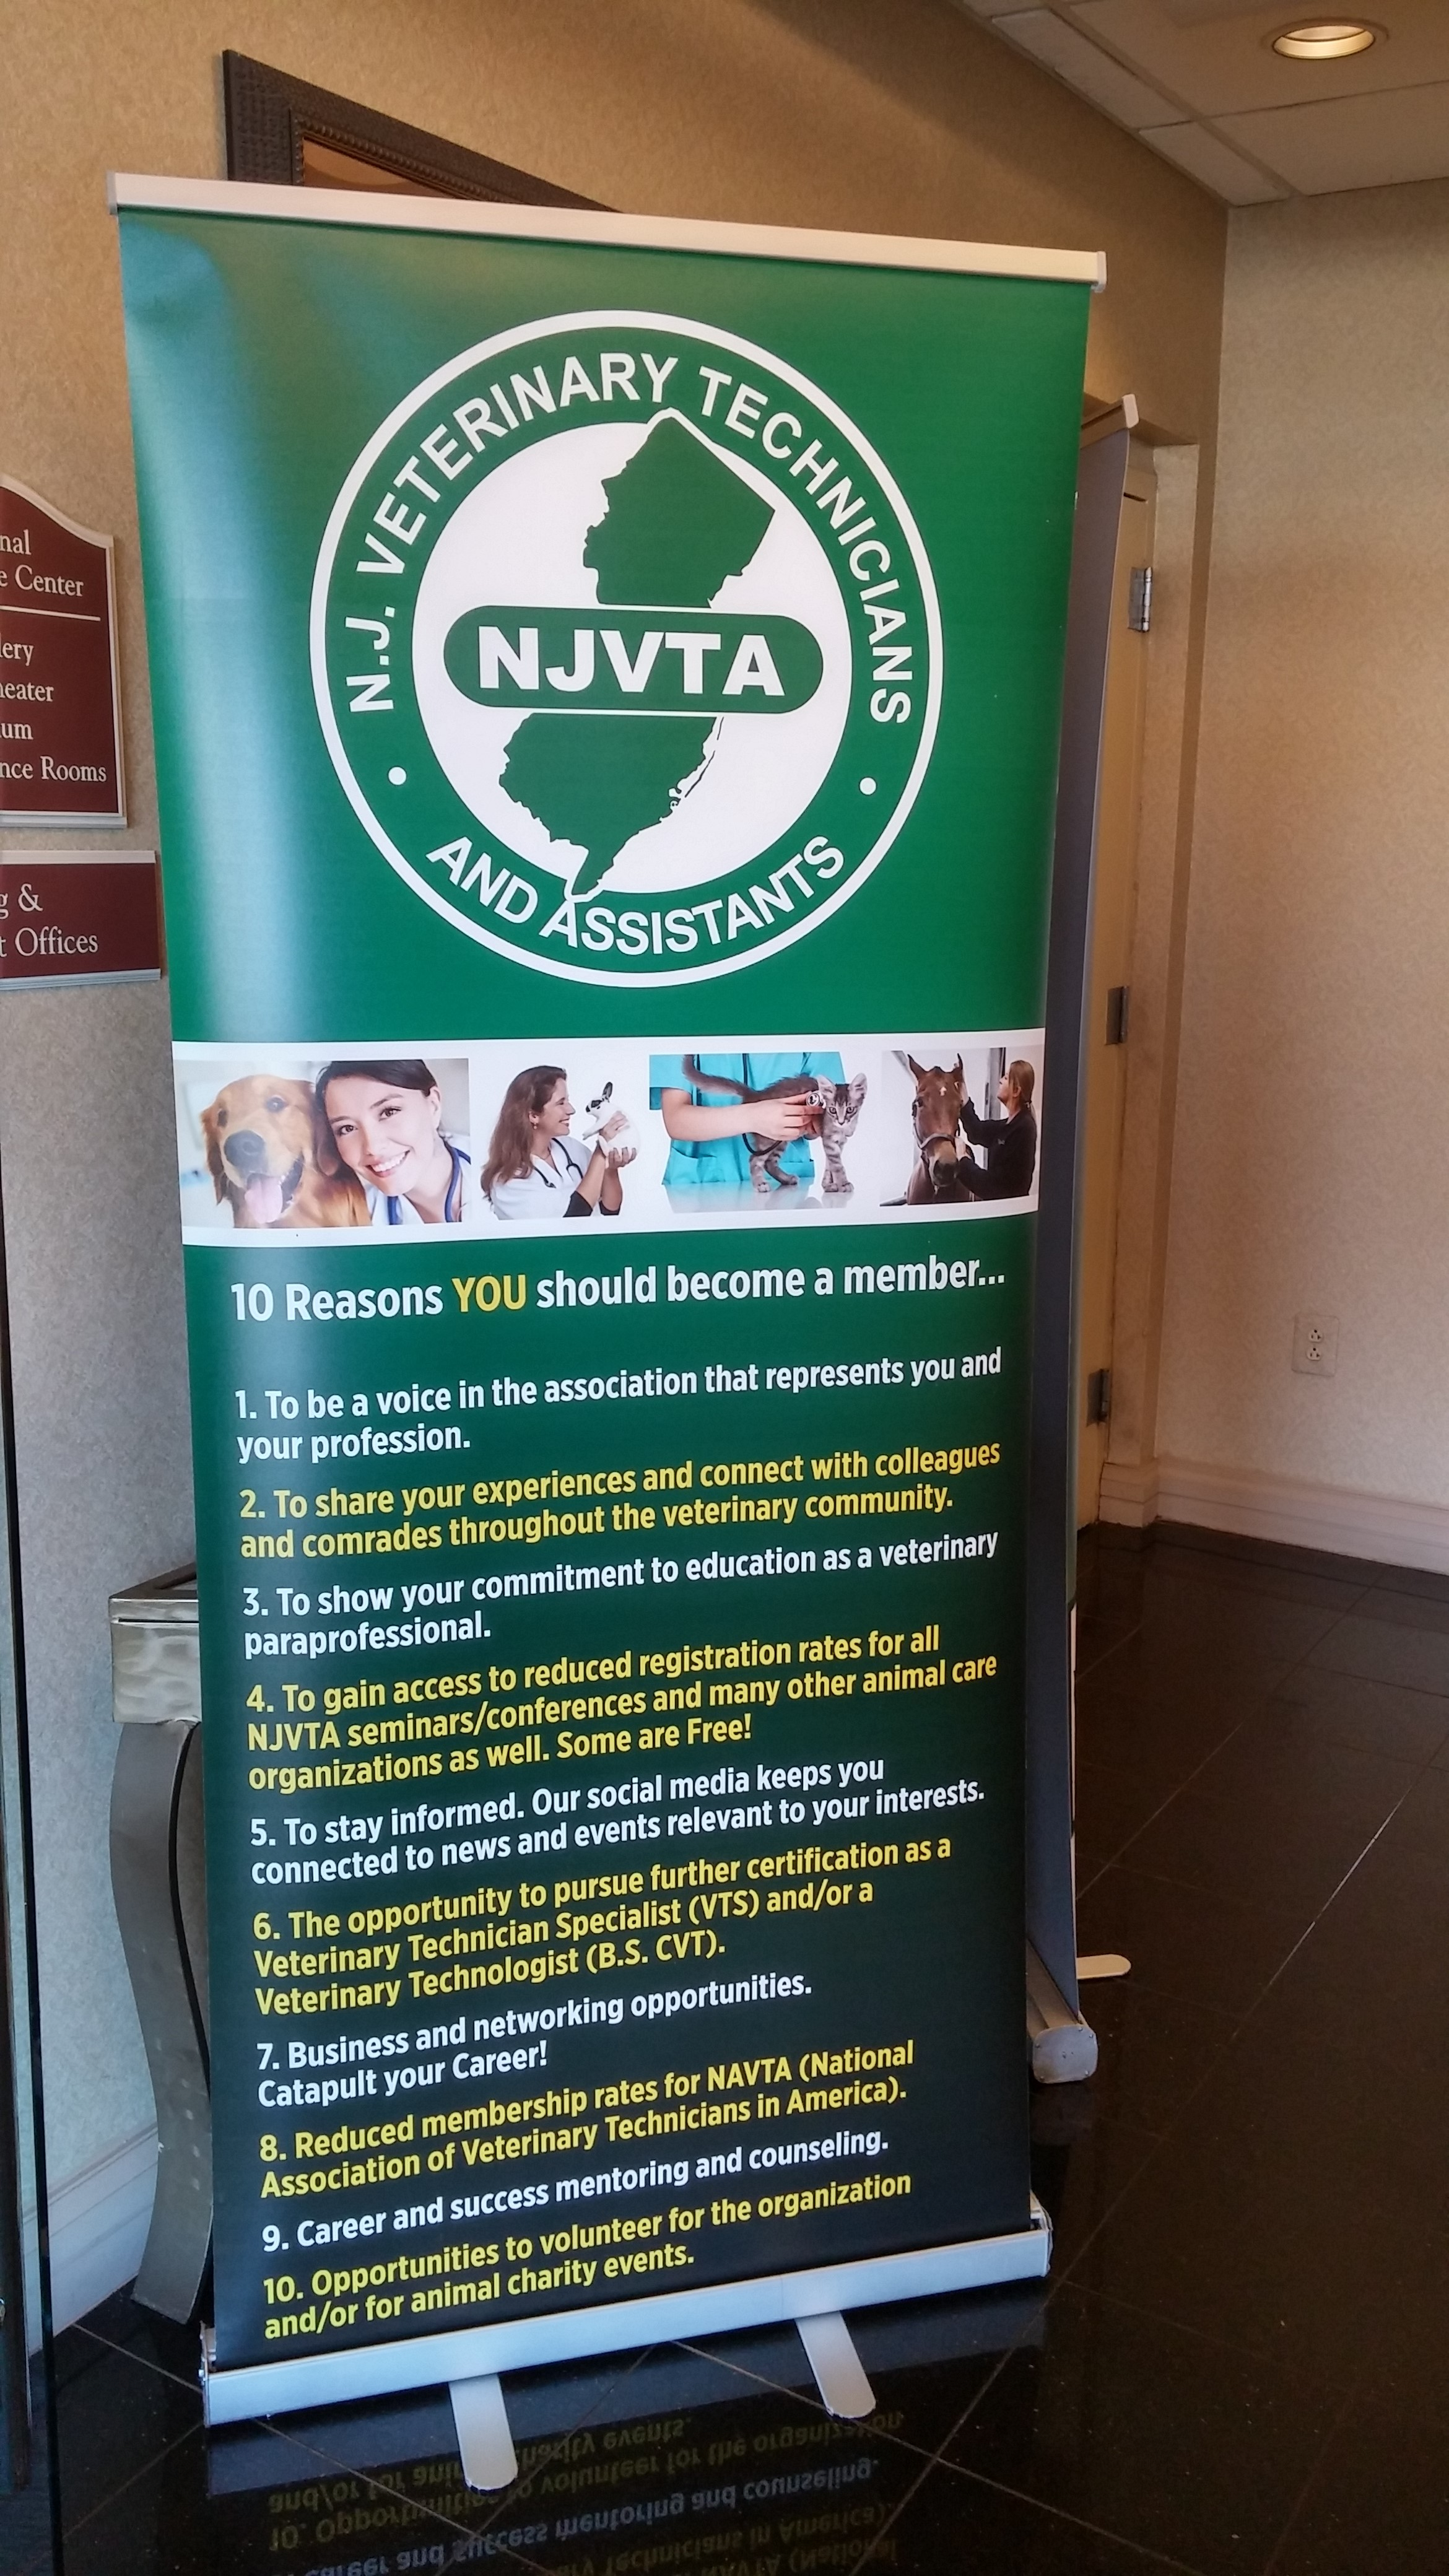 NJVTA Annual Meeting